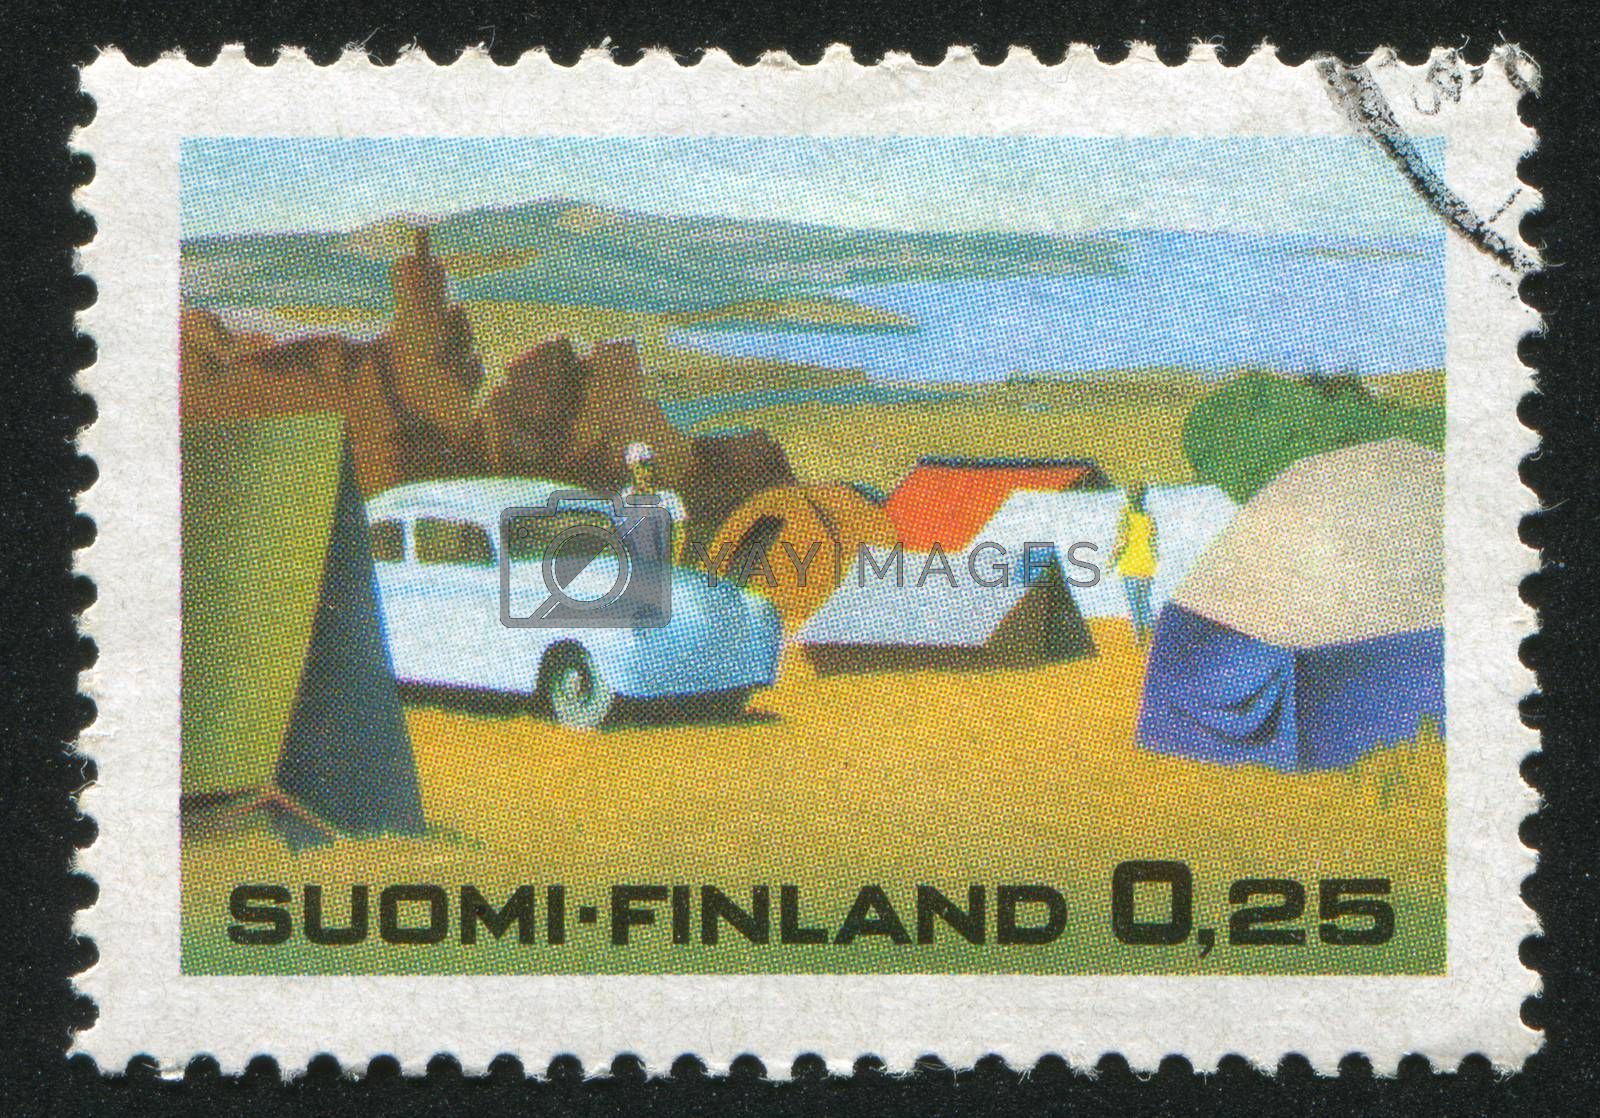 FINLAND - CIRCA 1968: stamp printed by Finland, shows Campingsite in Lake Area, circa 1968